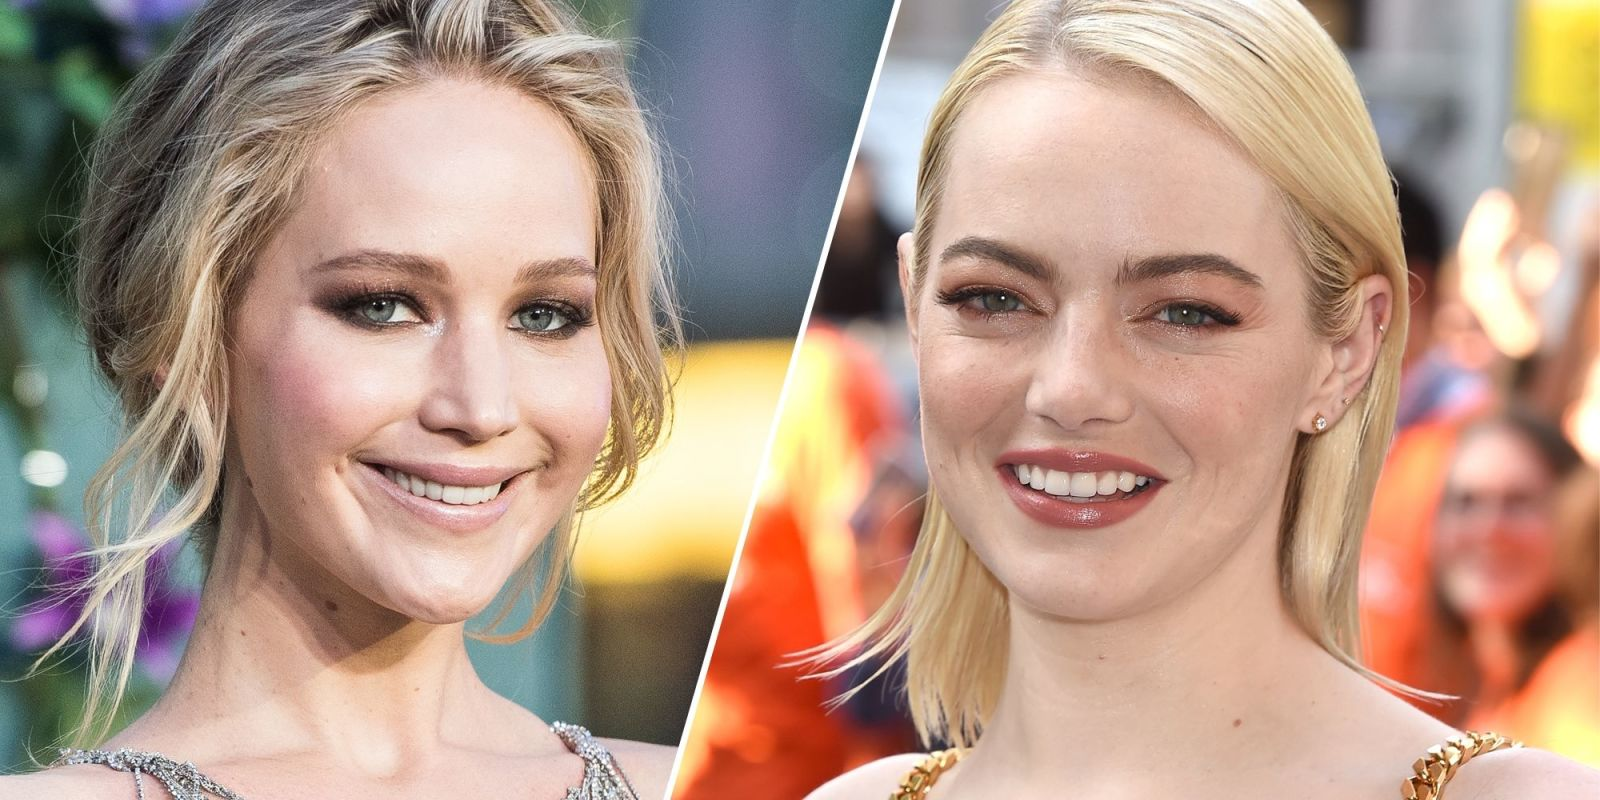 Jennifer Lawrence and Emma Stone Are Us All, Sharing an Awkward Hug